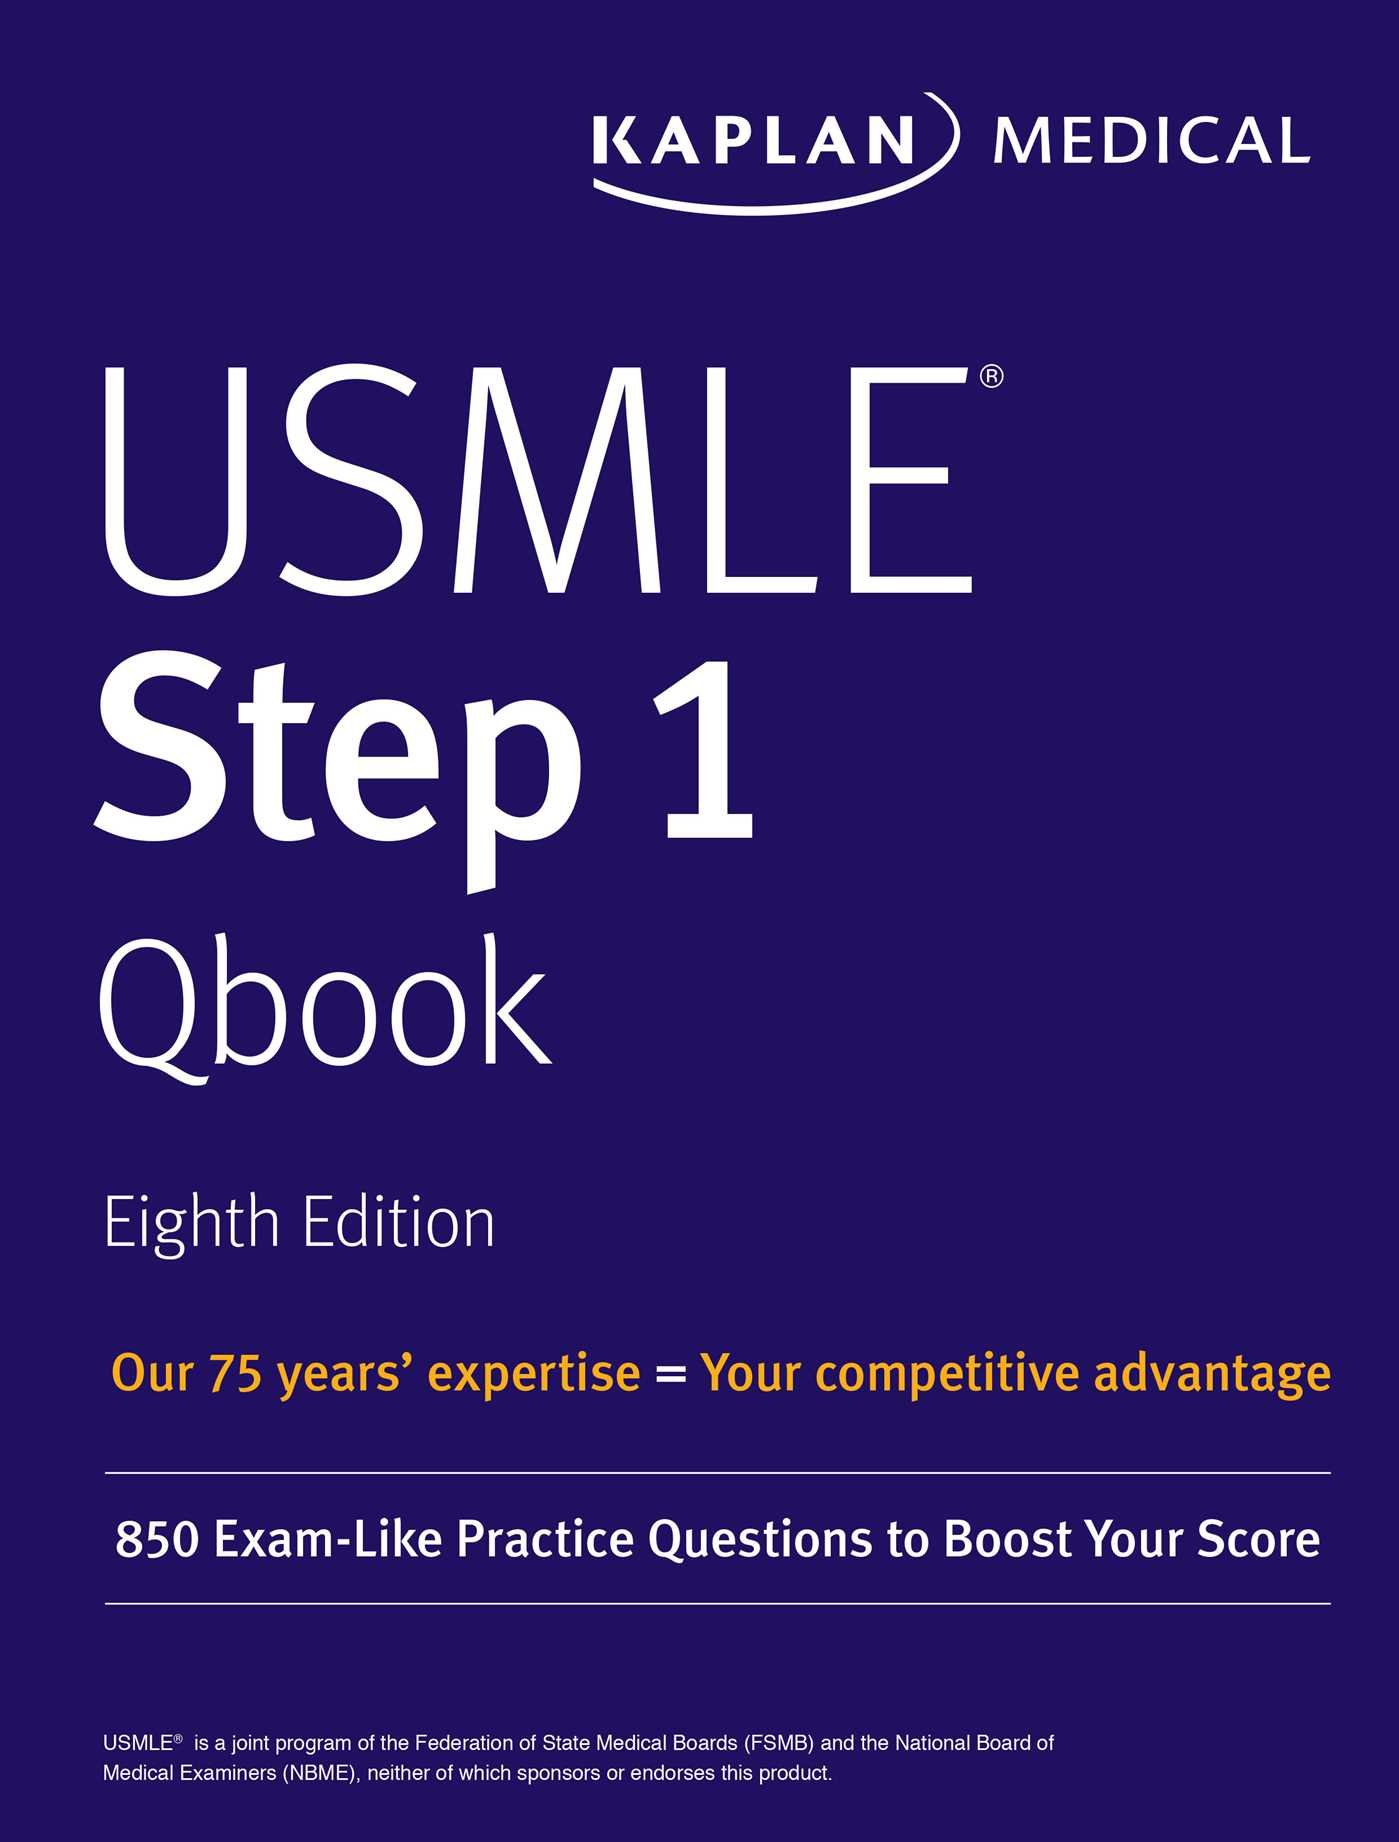 Buy USMLE Step 1 Qbook: 850 Exam-Like Practice Questions to